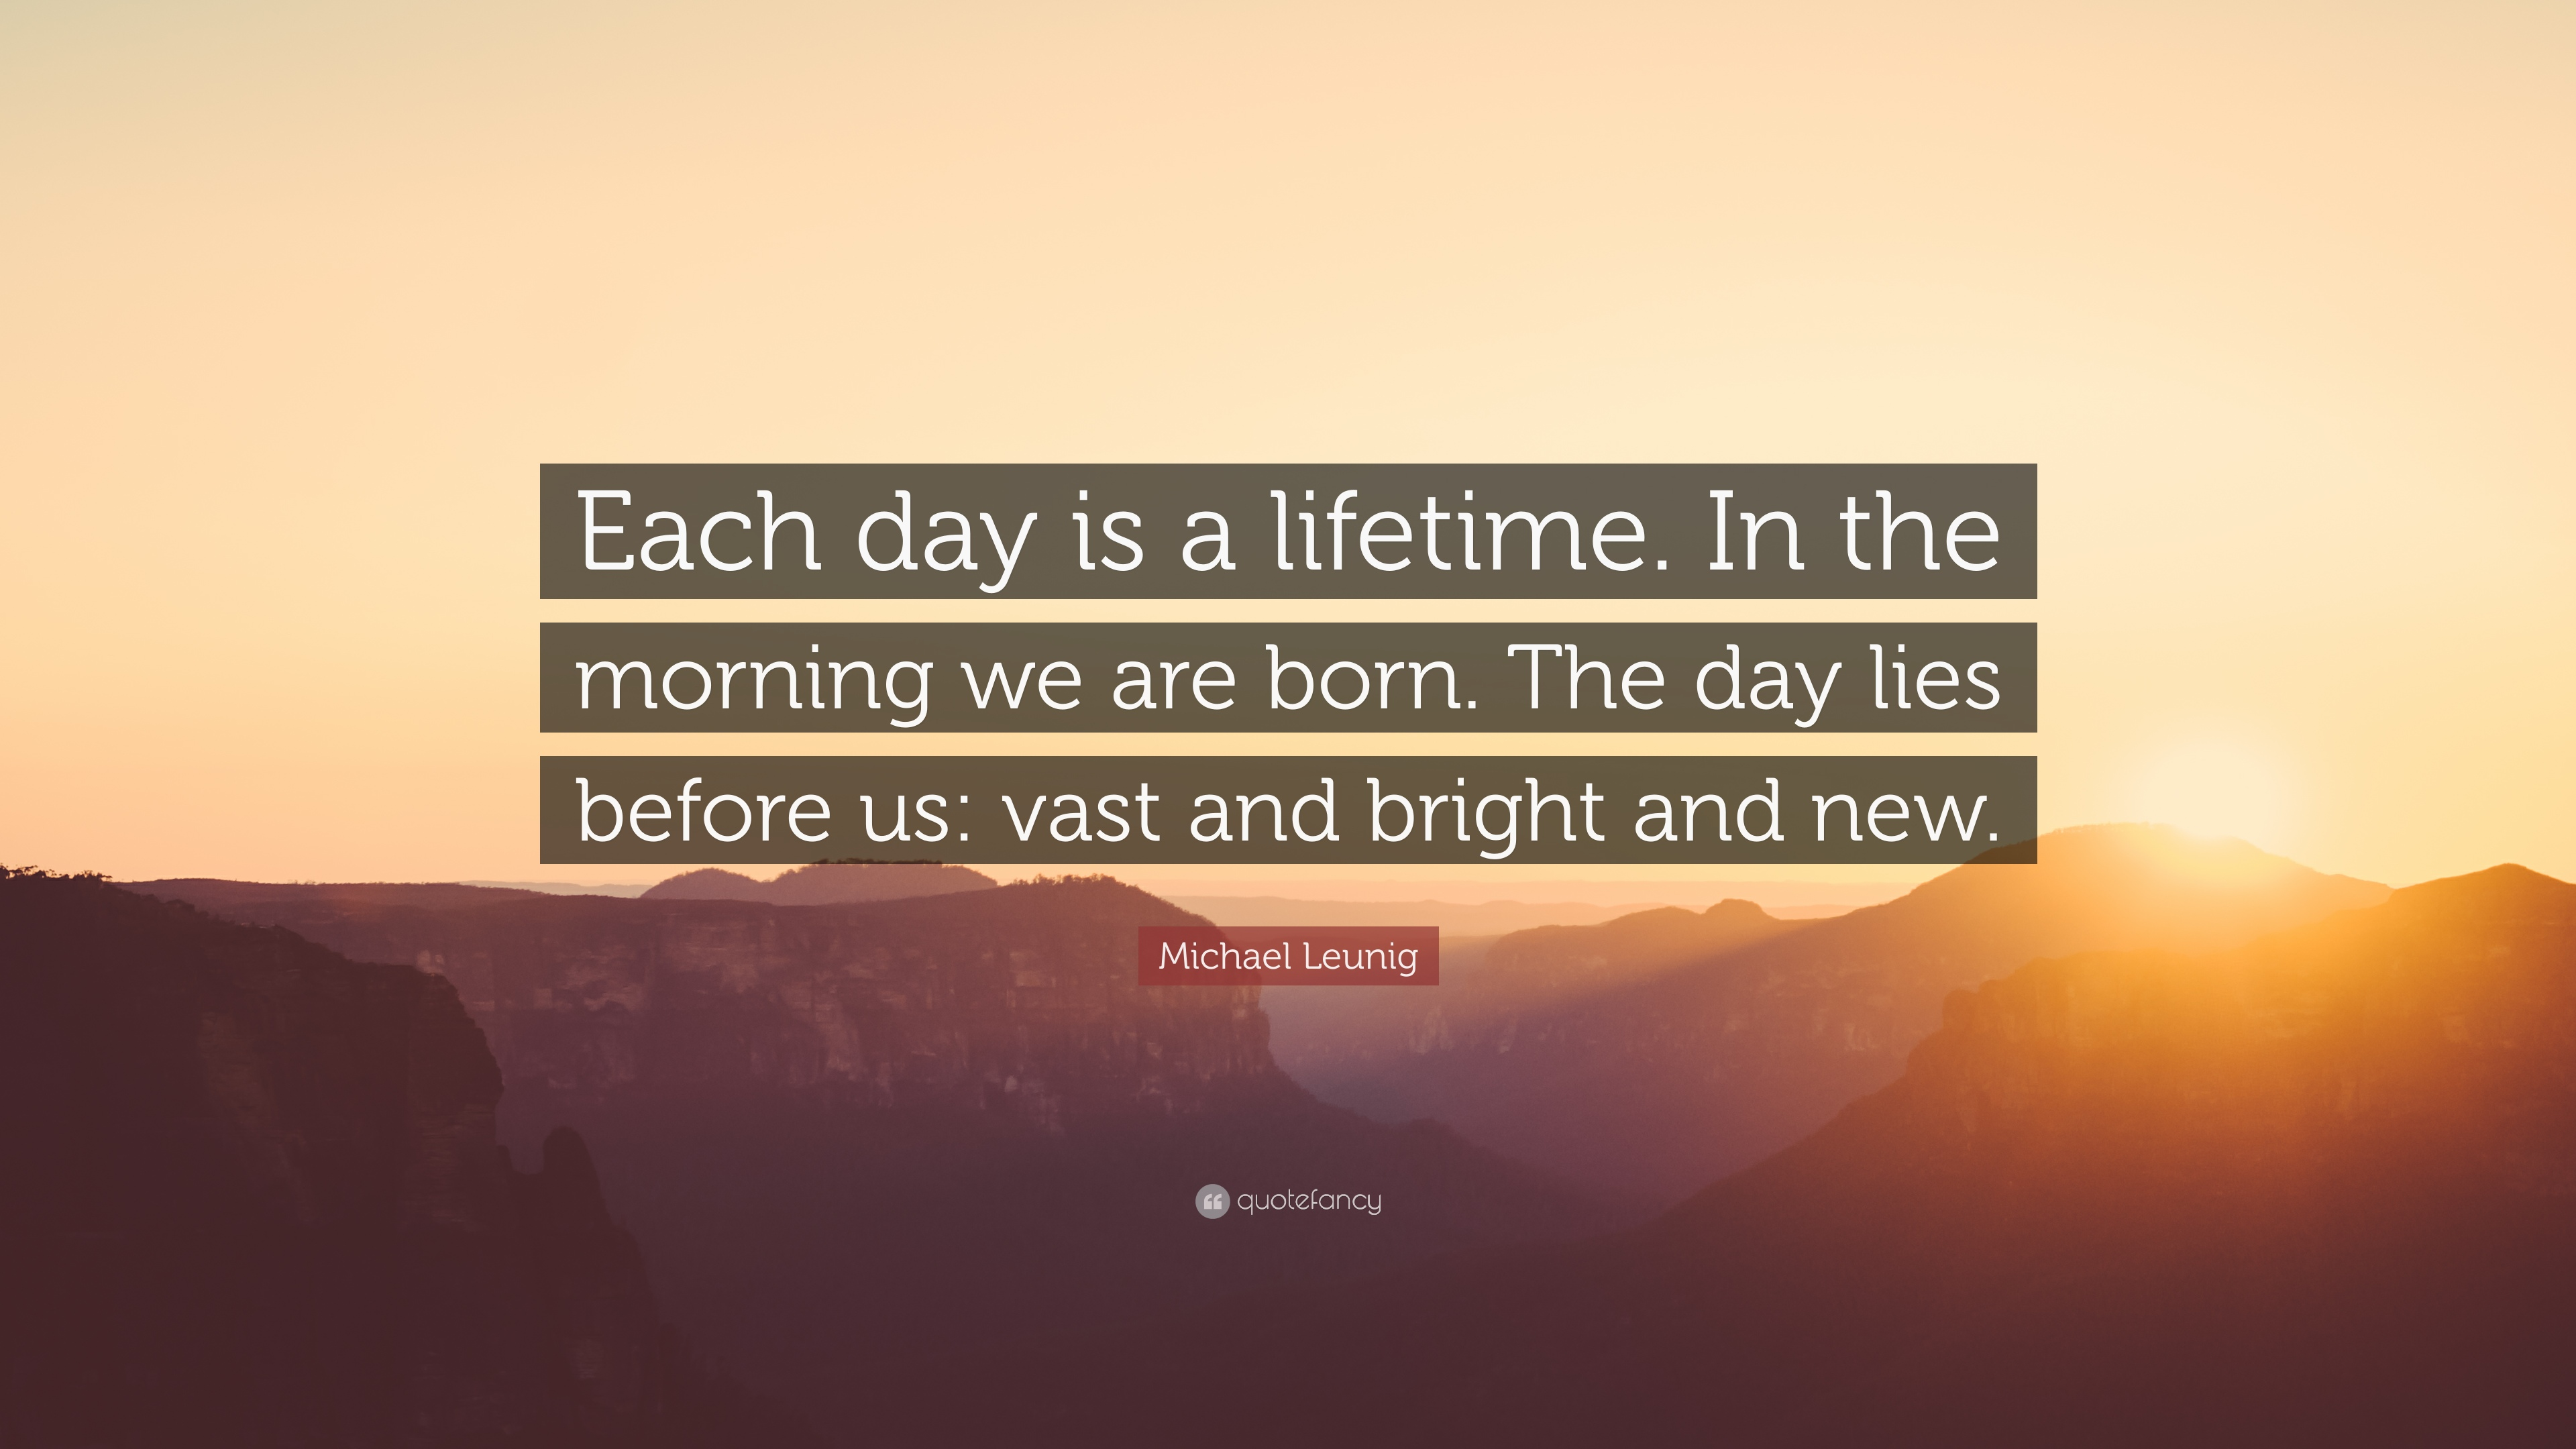 Delightful Michael Leunig Quote: U201cEach Day Is A Lifetime. In The Morning We Are